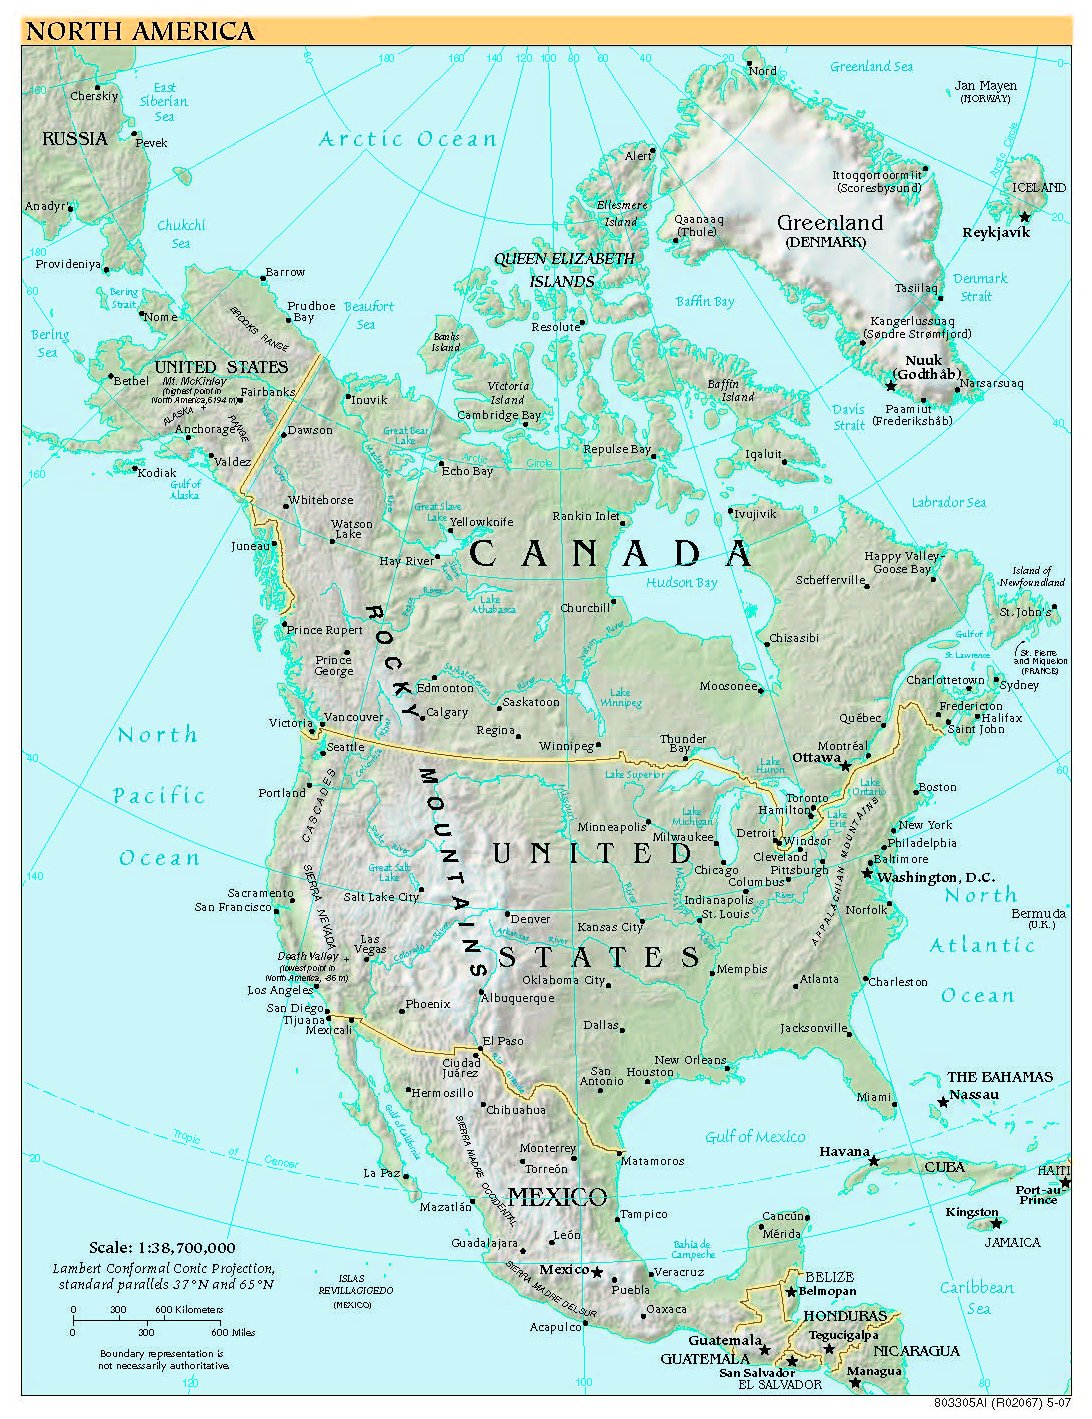 Free High Resolution Map of North America